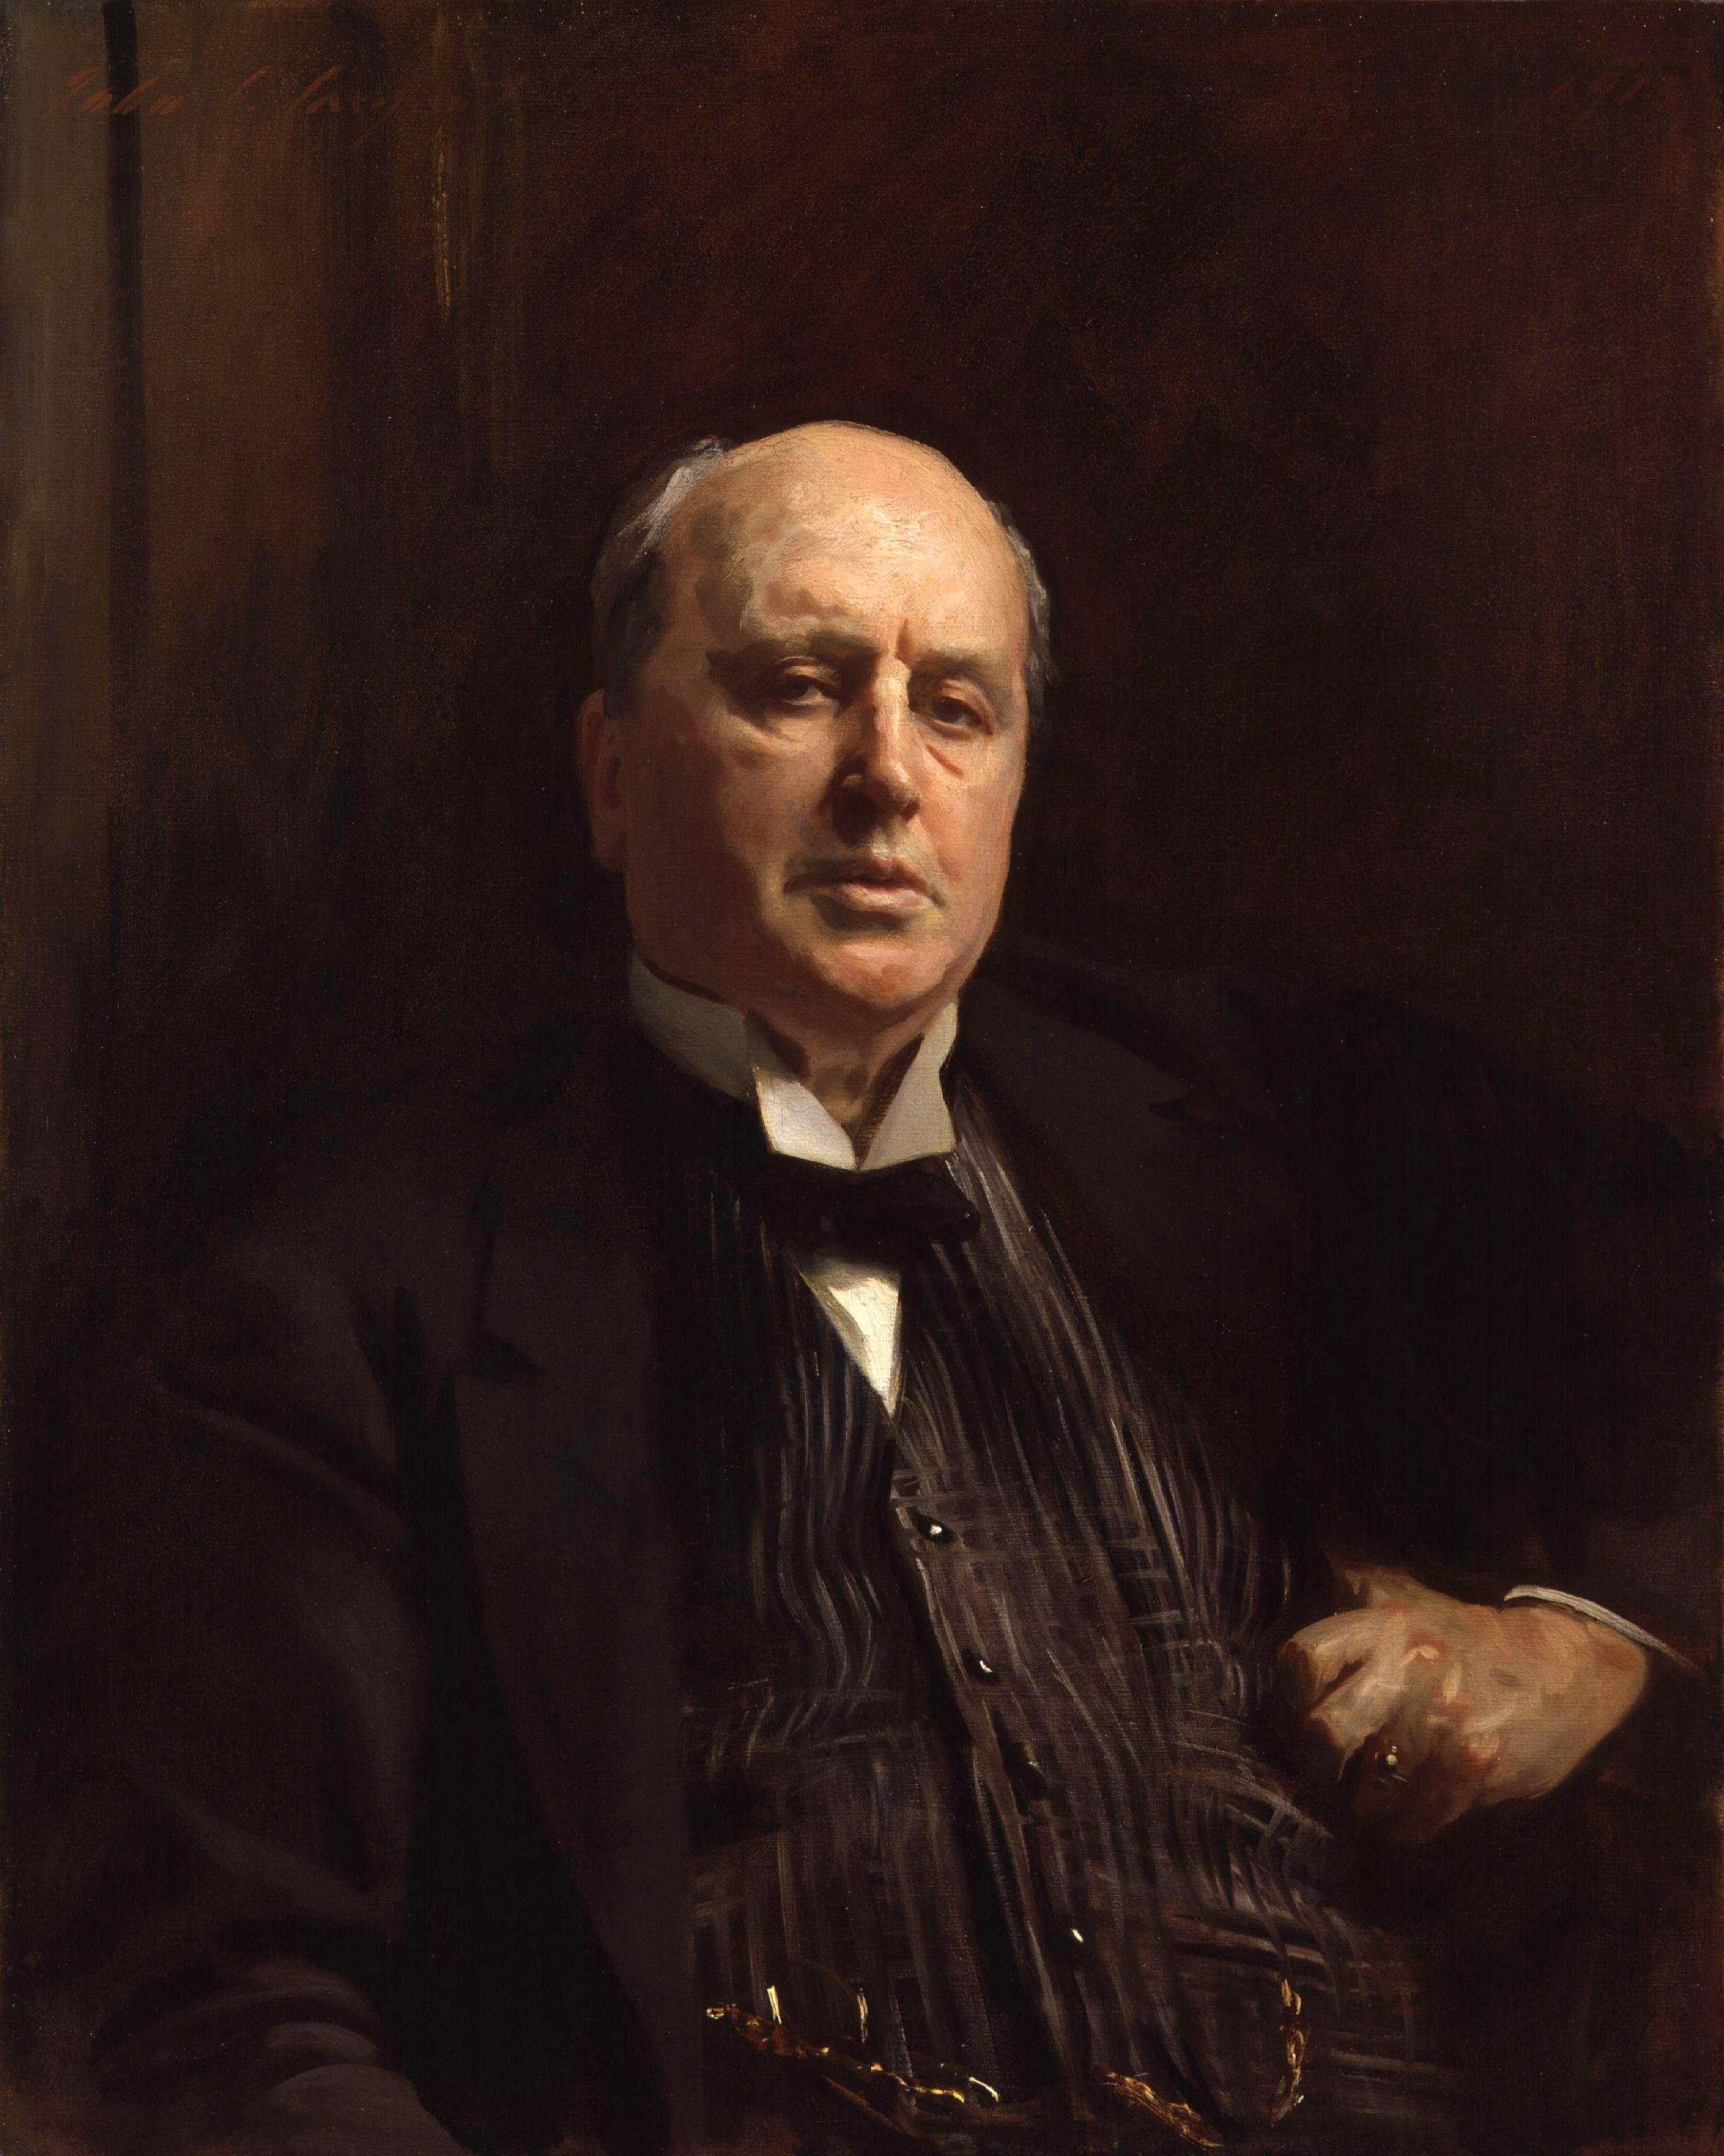 http://upload.wikimedia.org/wikipedia/commons/e/ed/Henry_James_by_John_Singer_Sargent_cleaned.jpg